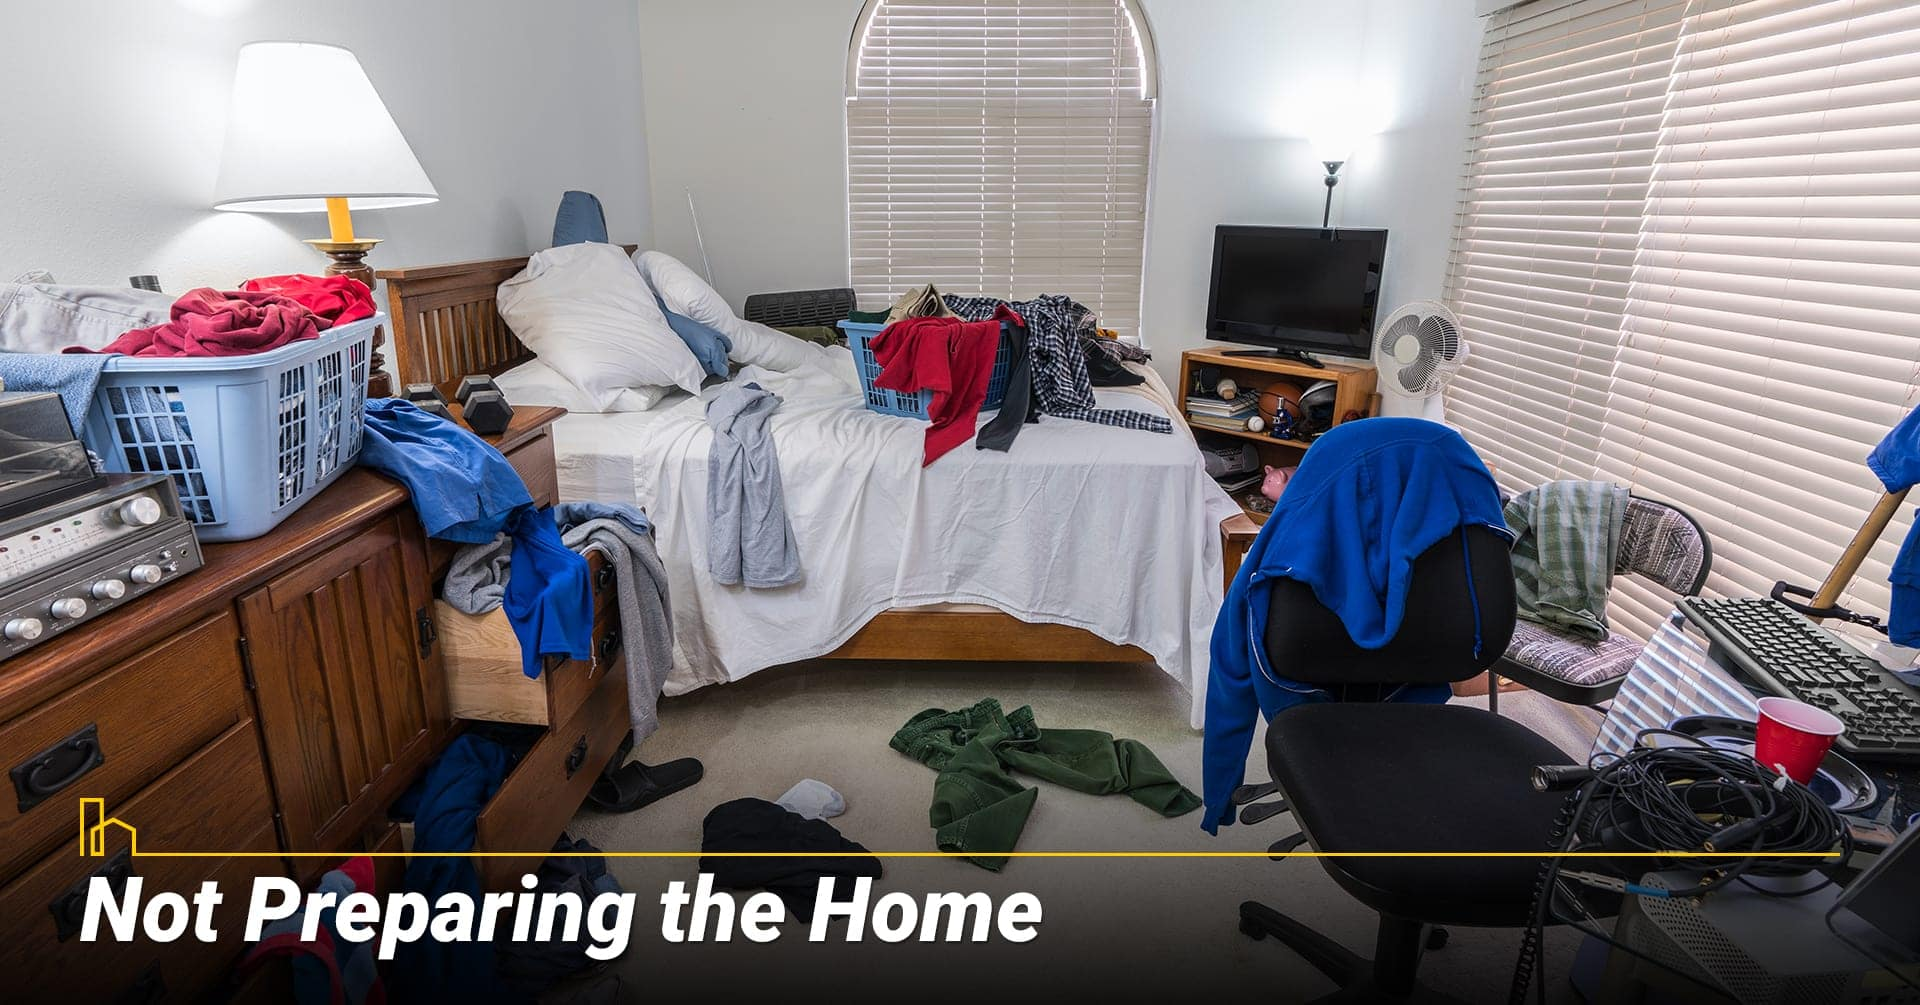 Not Preparing the Home, a messy home